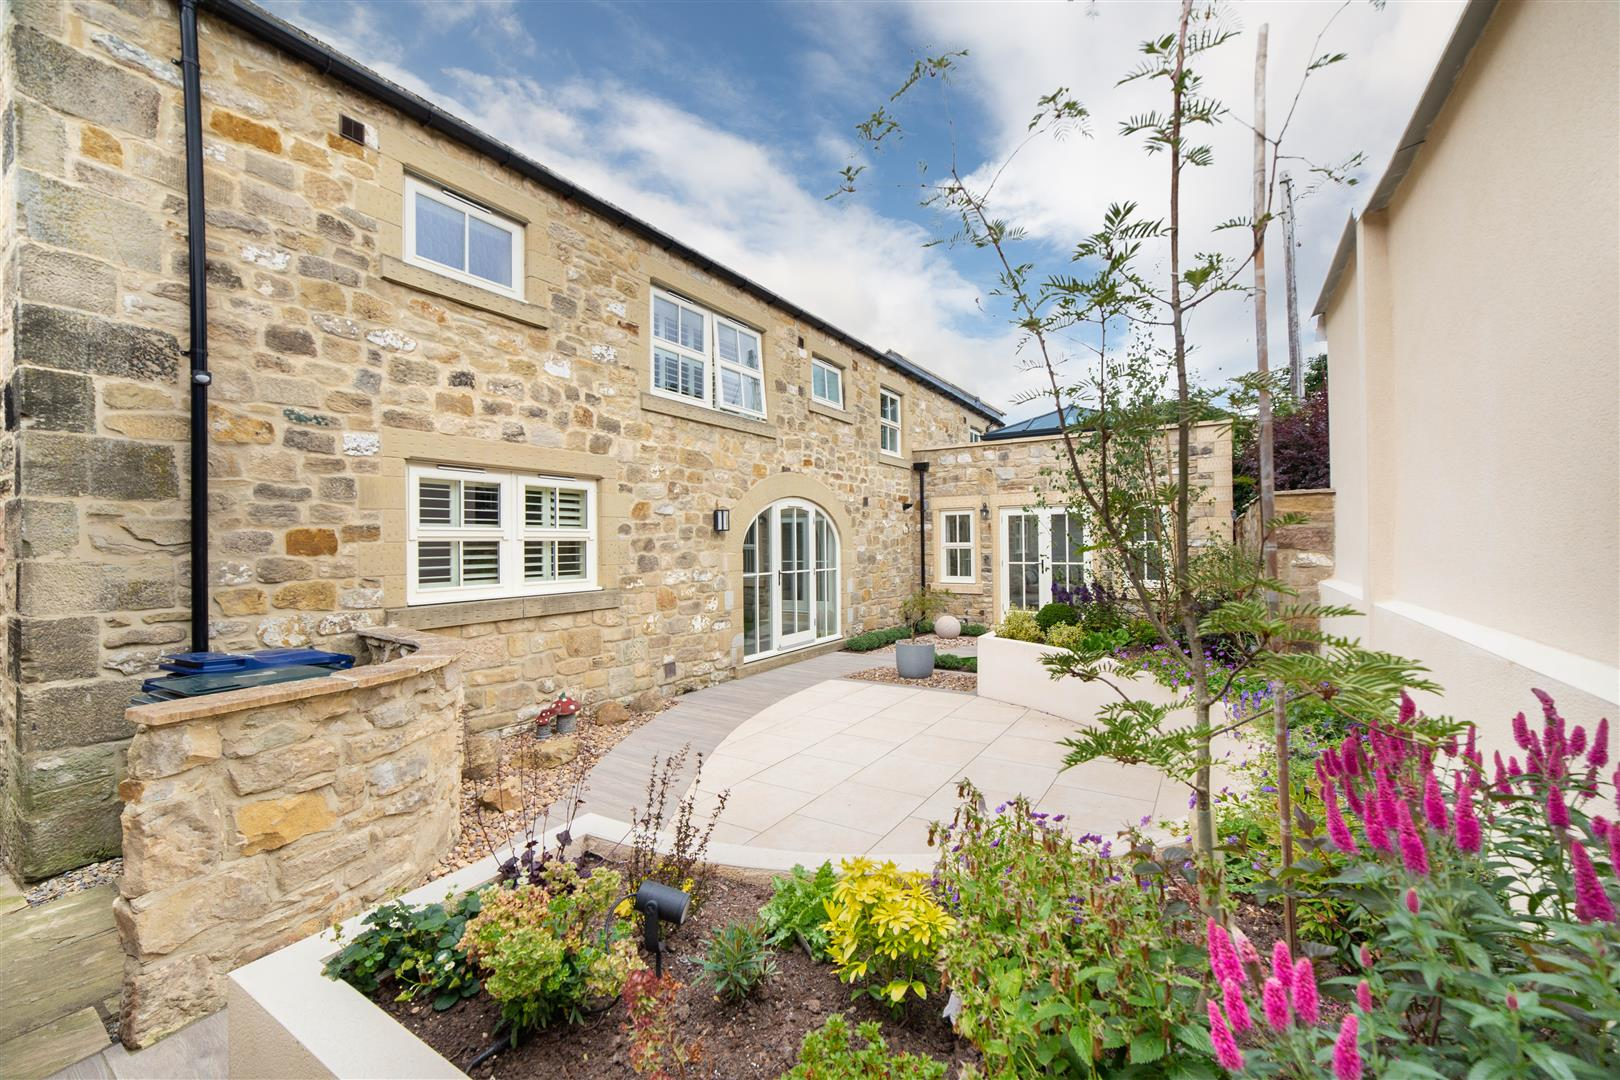 3 bed barn conversion for sale in Newcastle Upon Tyne, NE13 7BR - Property Image 1